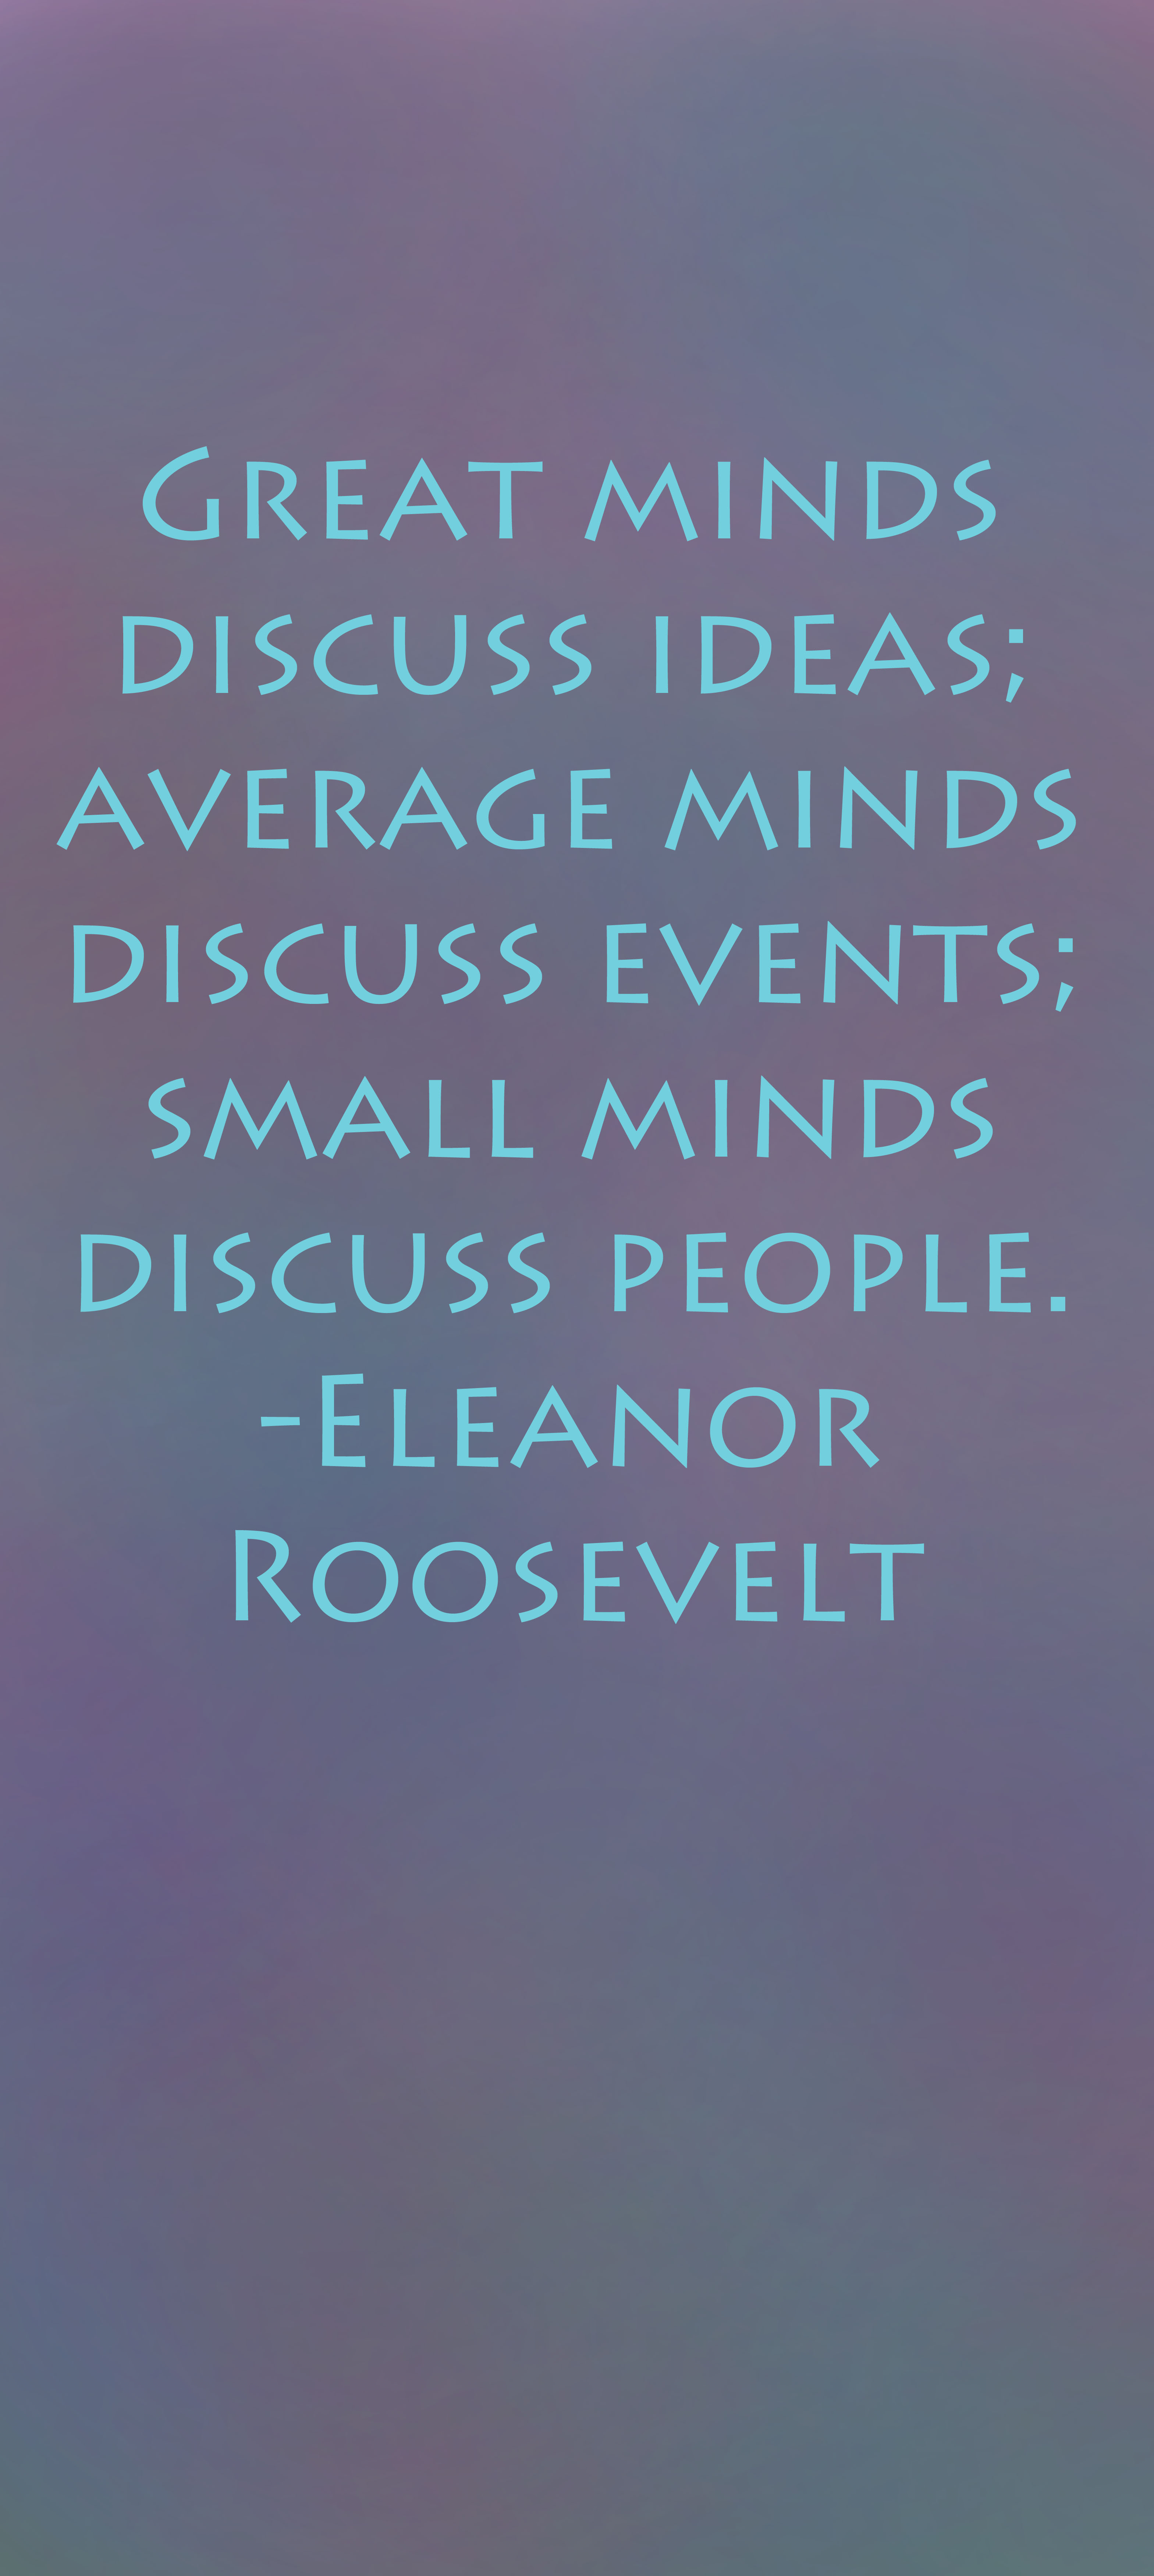 """""""Great minds discuss ideas; average minds discuss events; small minds discuss people."""" - Eleanor Roosevelt quote written on a purple painterly background."""